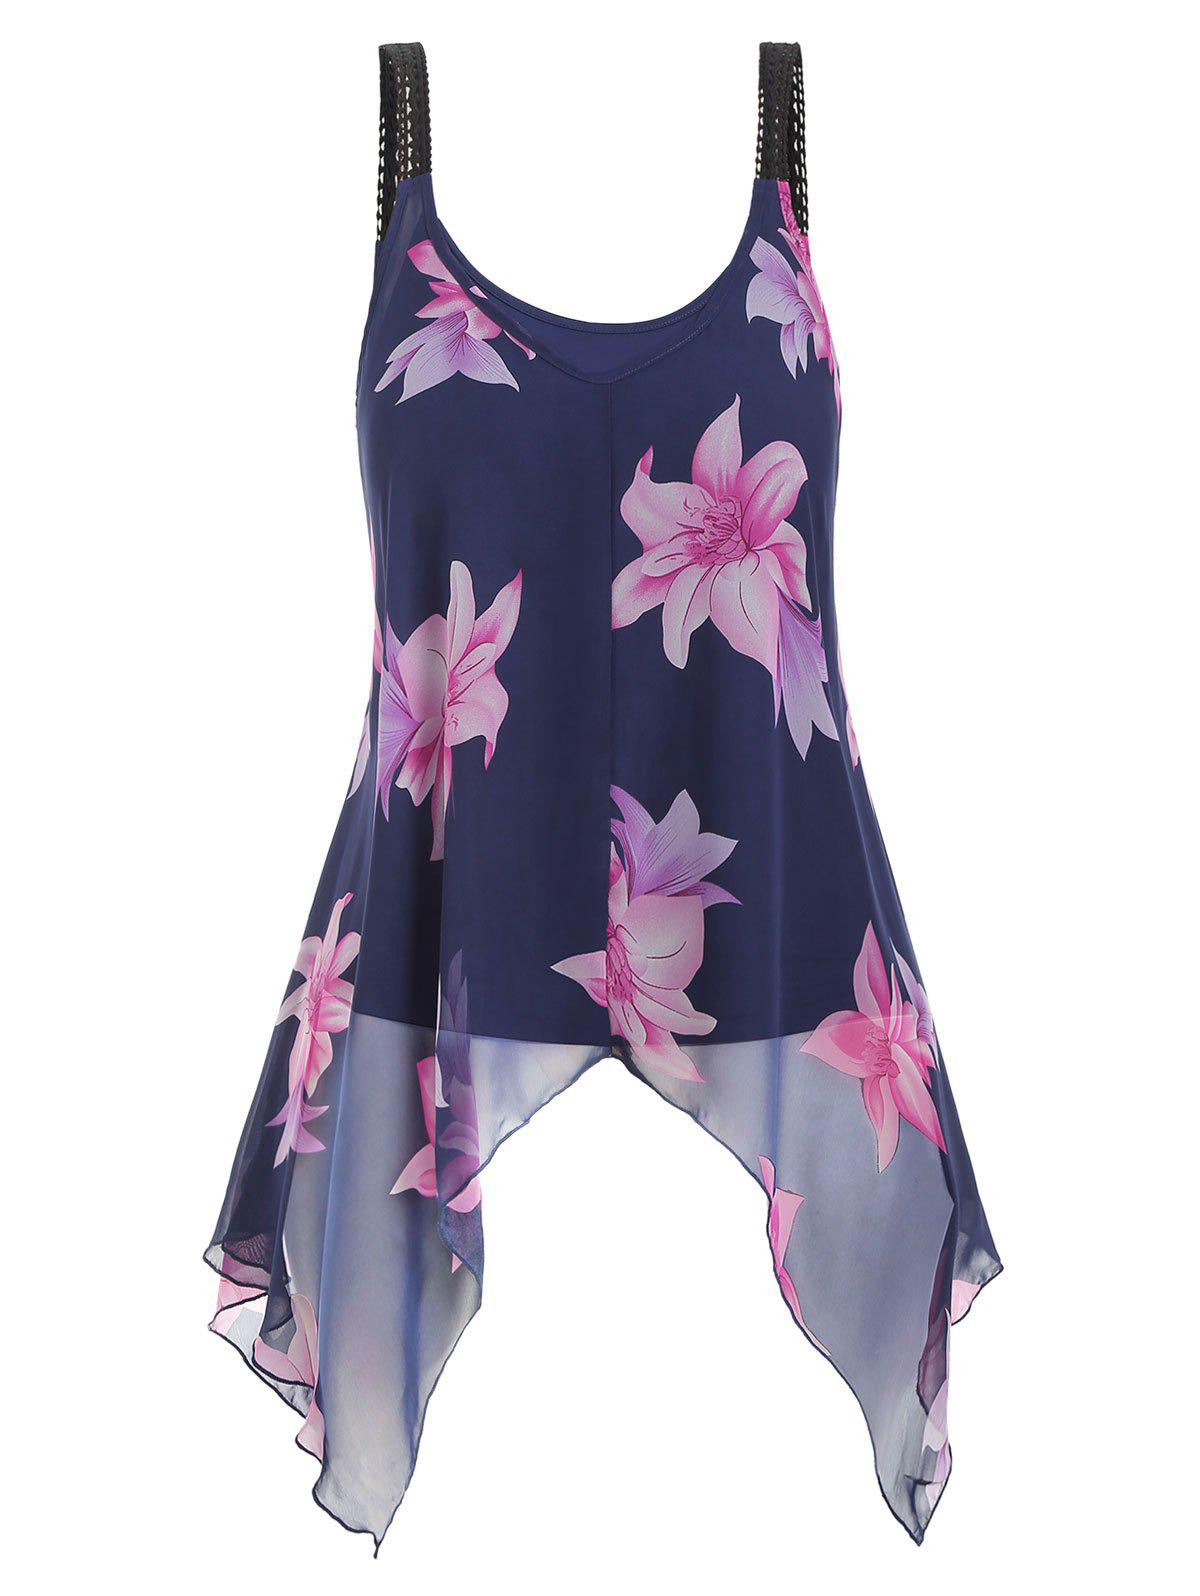 Plus Size Camisole and Floral Chiffon Tank Top - MIDNIGHT BLUE 2X